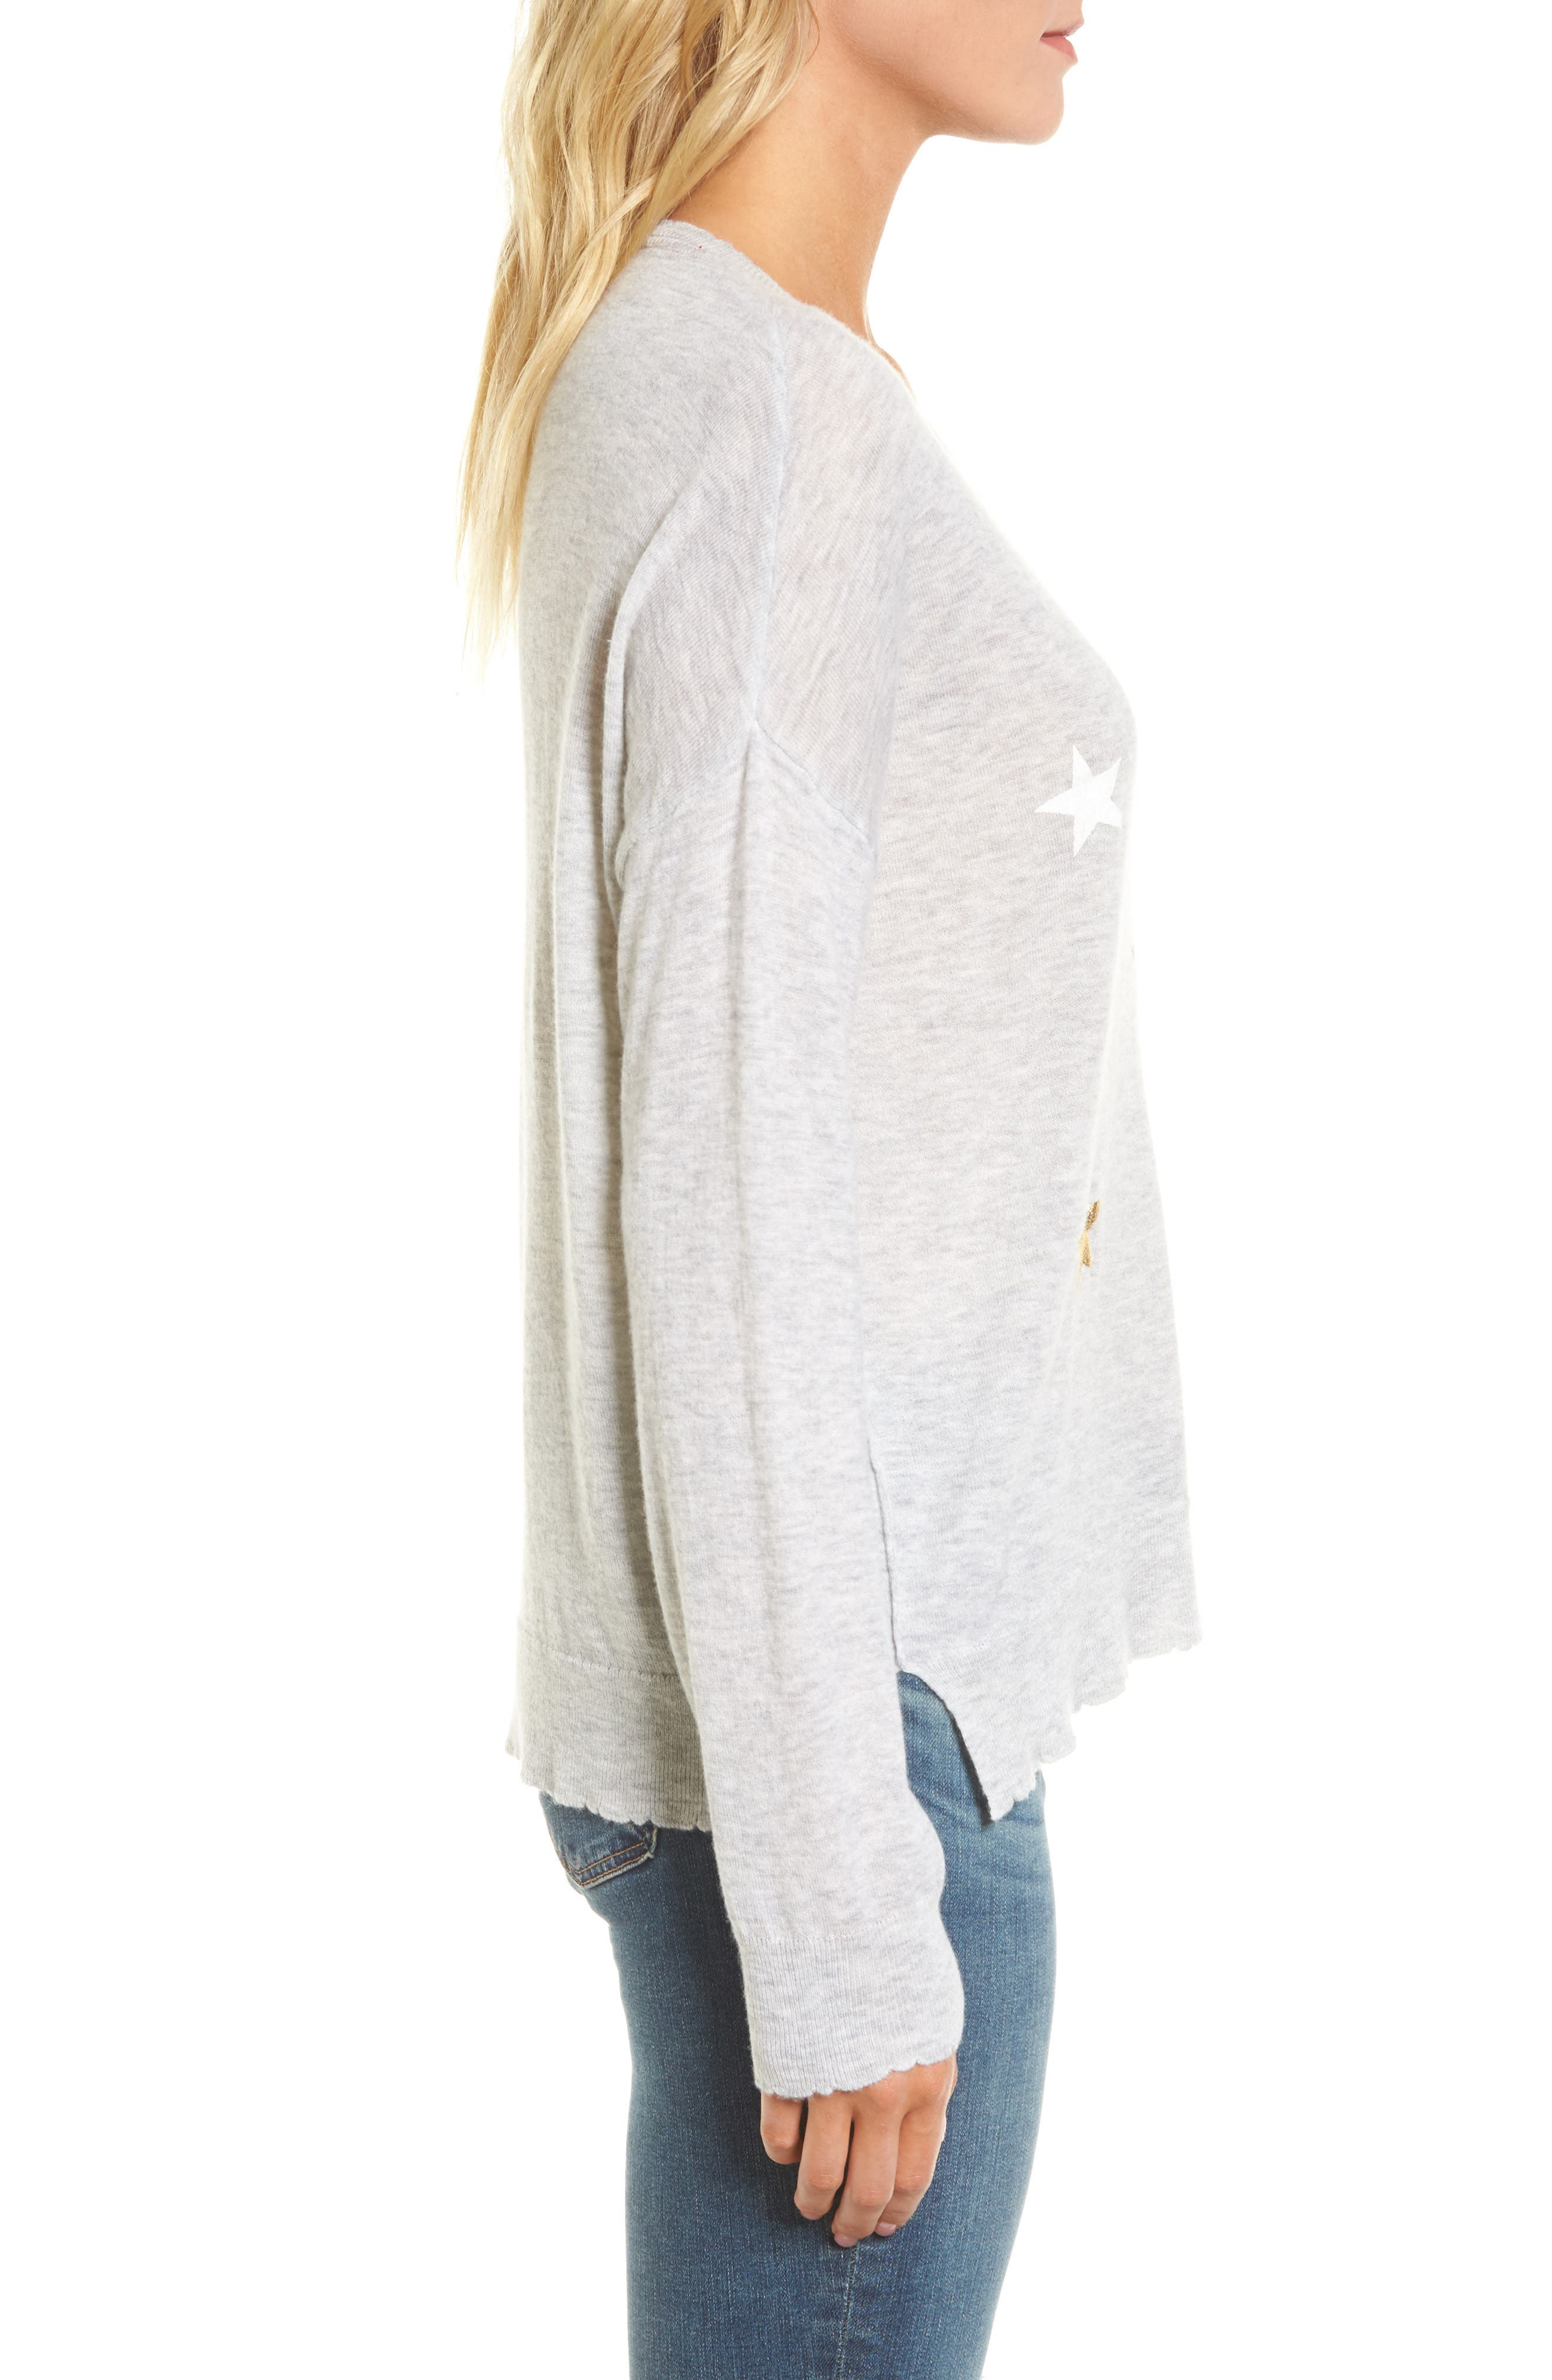 Stars Wool & Cashmere Sweater,                             Alternate thumbnail 3, color,